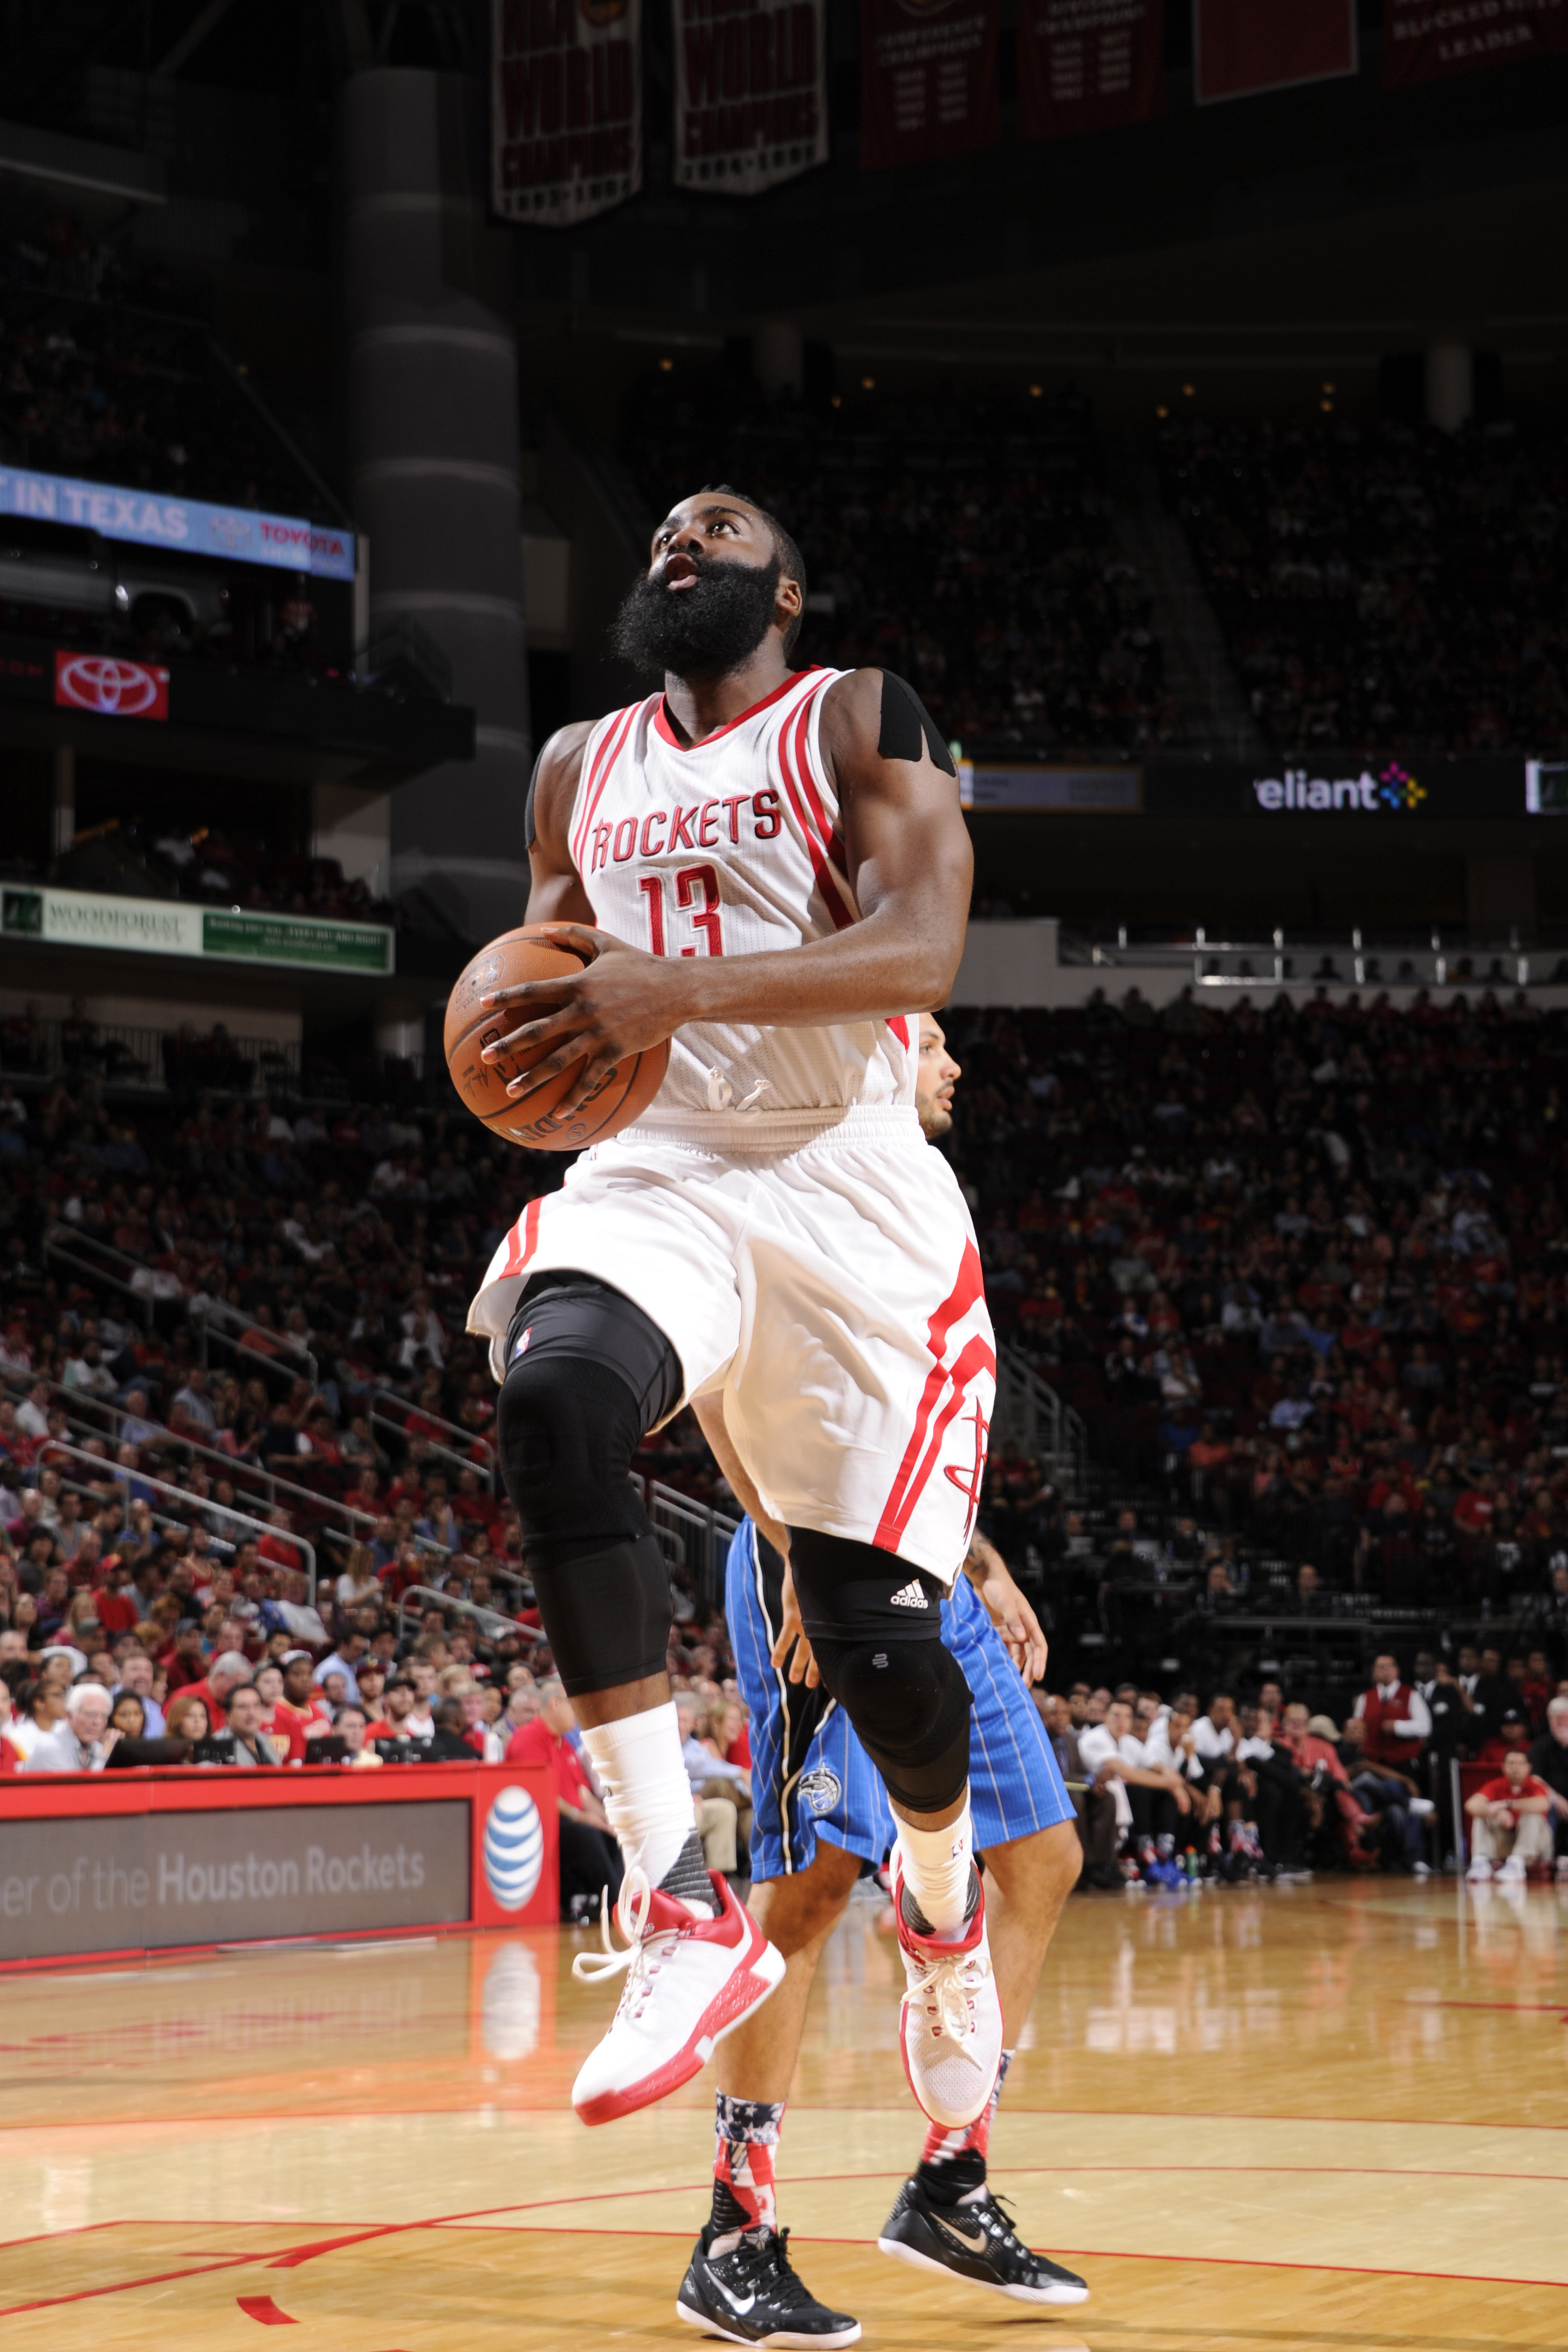 HOUSTON, TX - NOVEMBER 4:  James Harden #13 of the Houston Rockets shoots the ball against the Orlando Magic on November 4, 2015 at the Toyota Center in Houston, Texas. (Photo by Bill Baptist/NBAE via Getty Images)